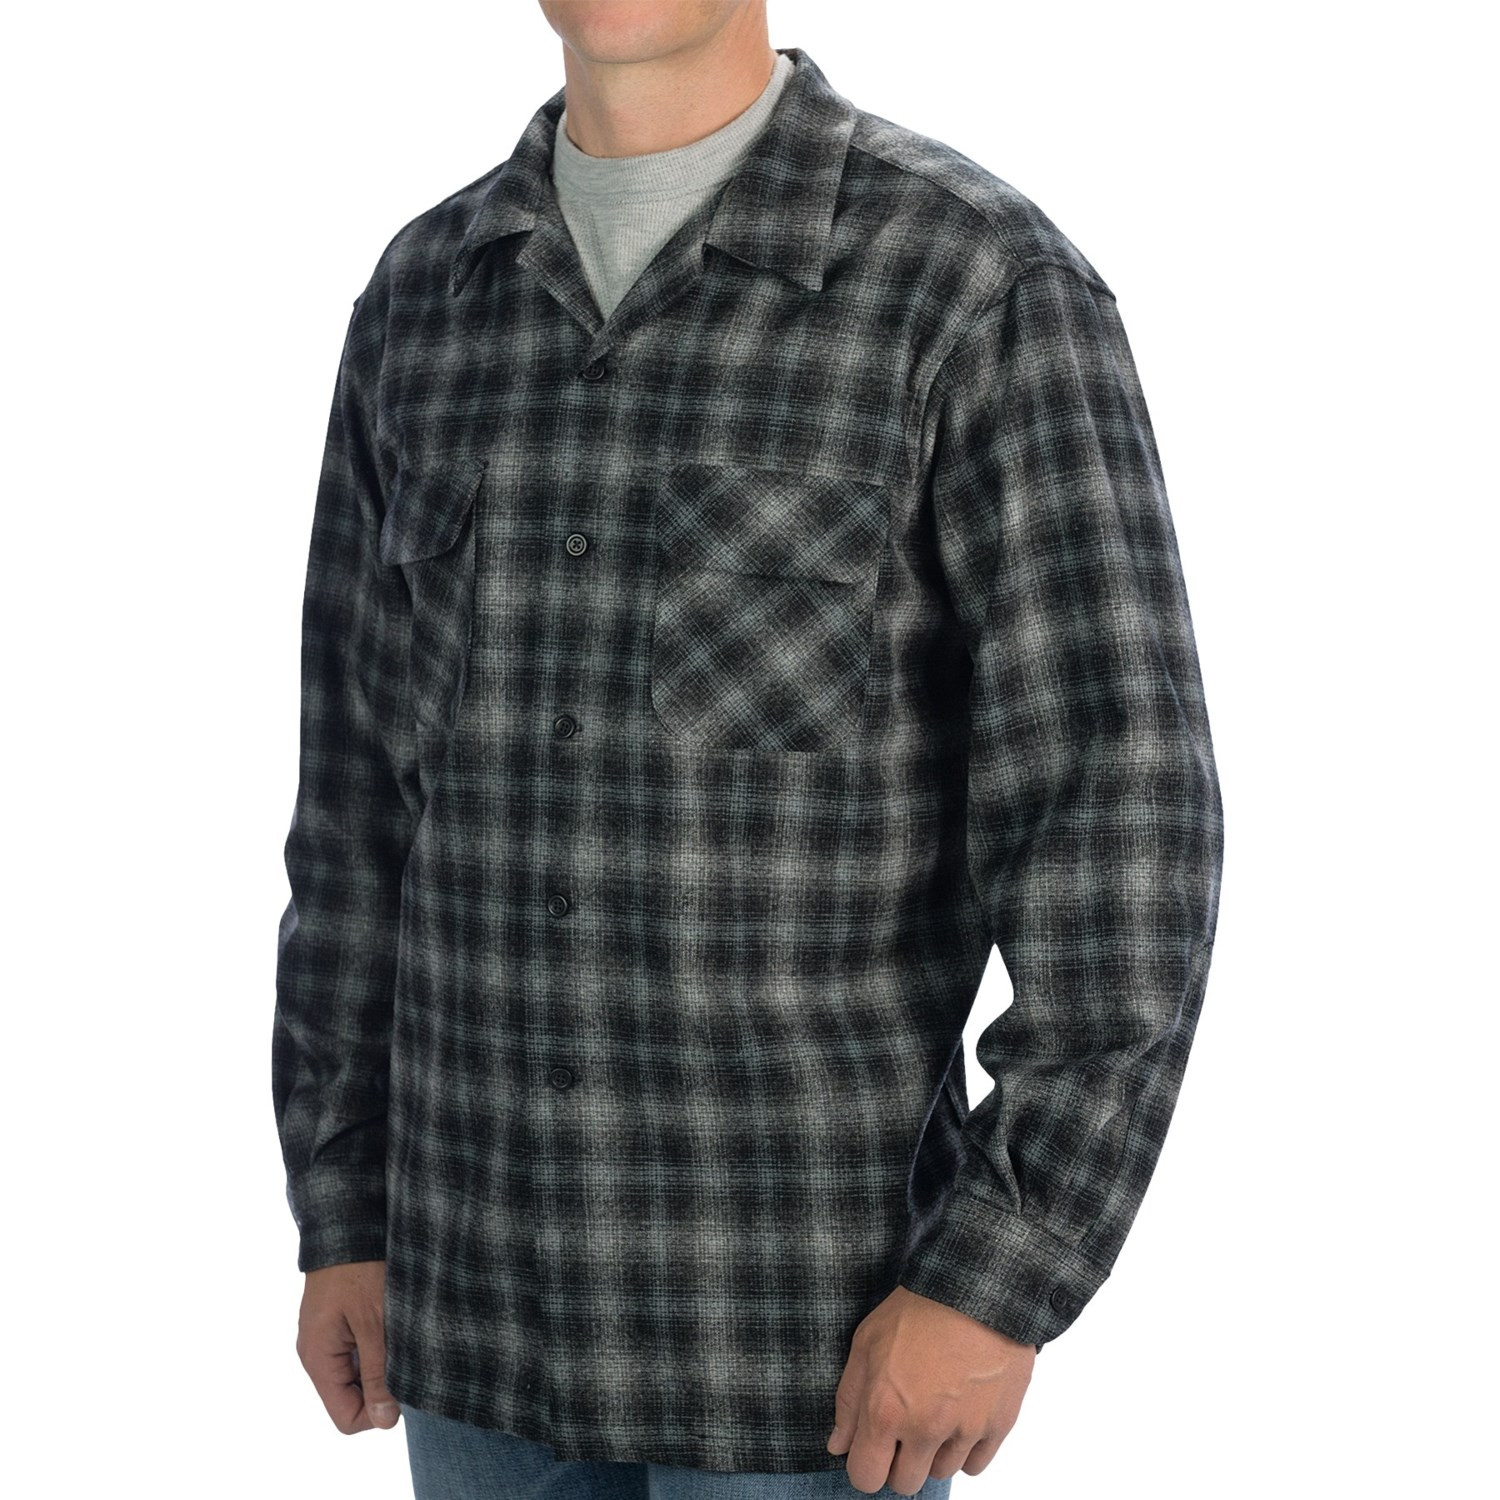 Pendleton Men's Wool Plaid Shirt. Pendlton Wool Plaid Shirt 's. In , Clarence Morton Bishop came up with the idea to produce men's woolen sport shirts in bright colors and patterns. Until that point, woolen shirts had been only used for work wear and hence they only came in plain colors. The Pendleton Plaid Shirts turned out to be.